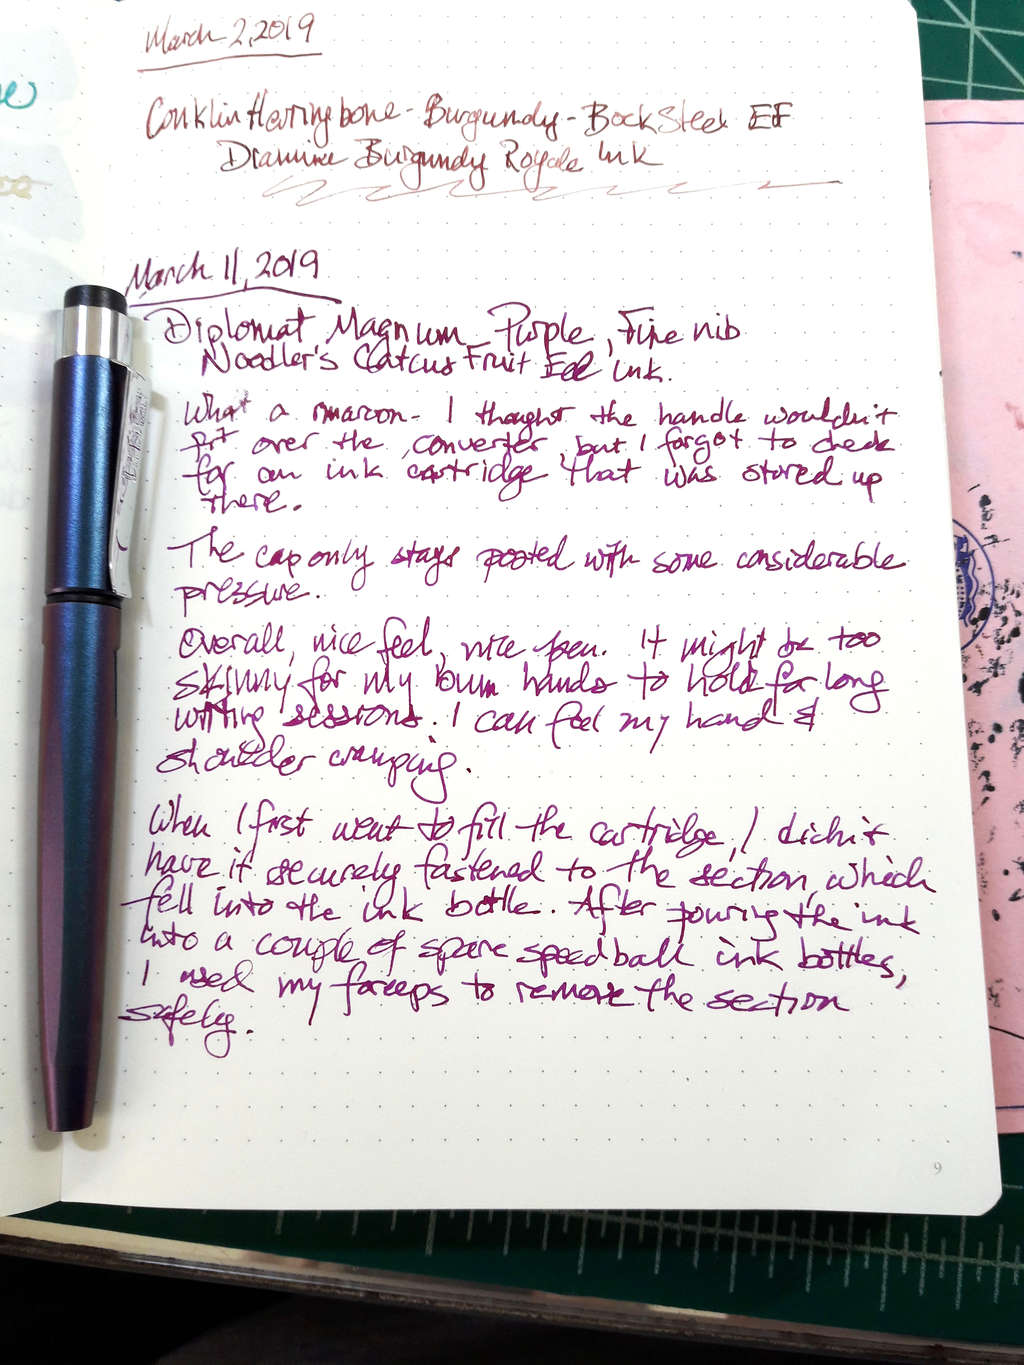 010-new-pen-day-diplomat-magnum-prismatic-purple-writing-sample-and-review